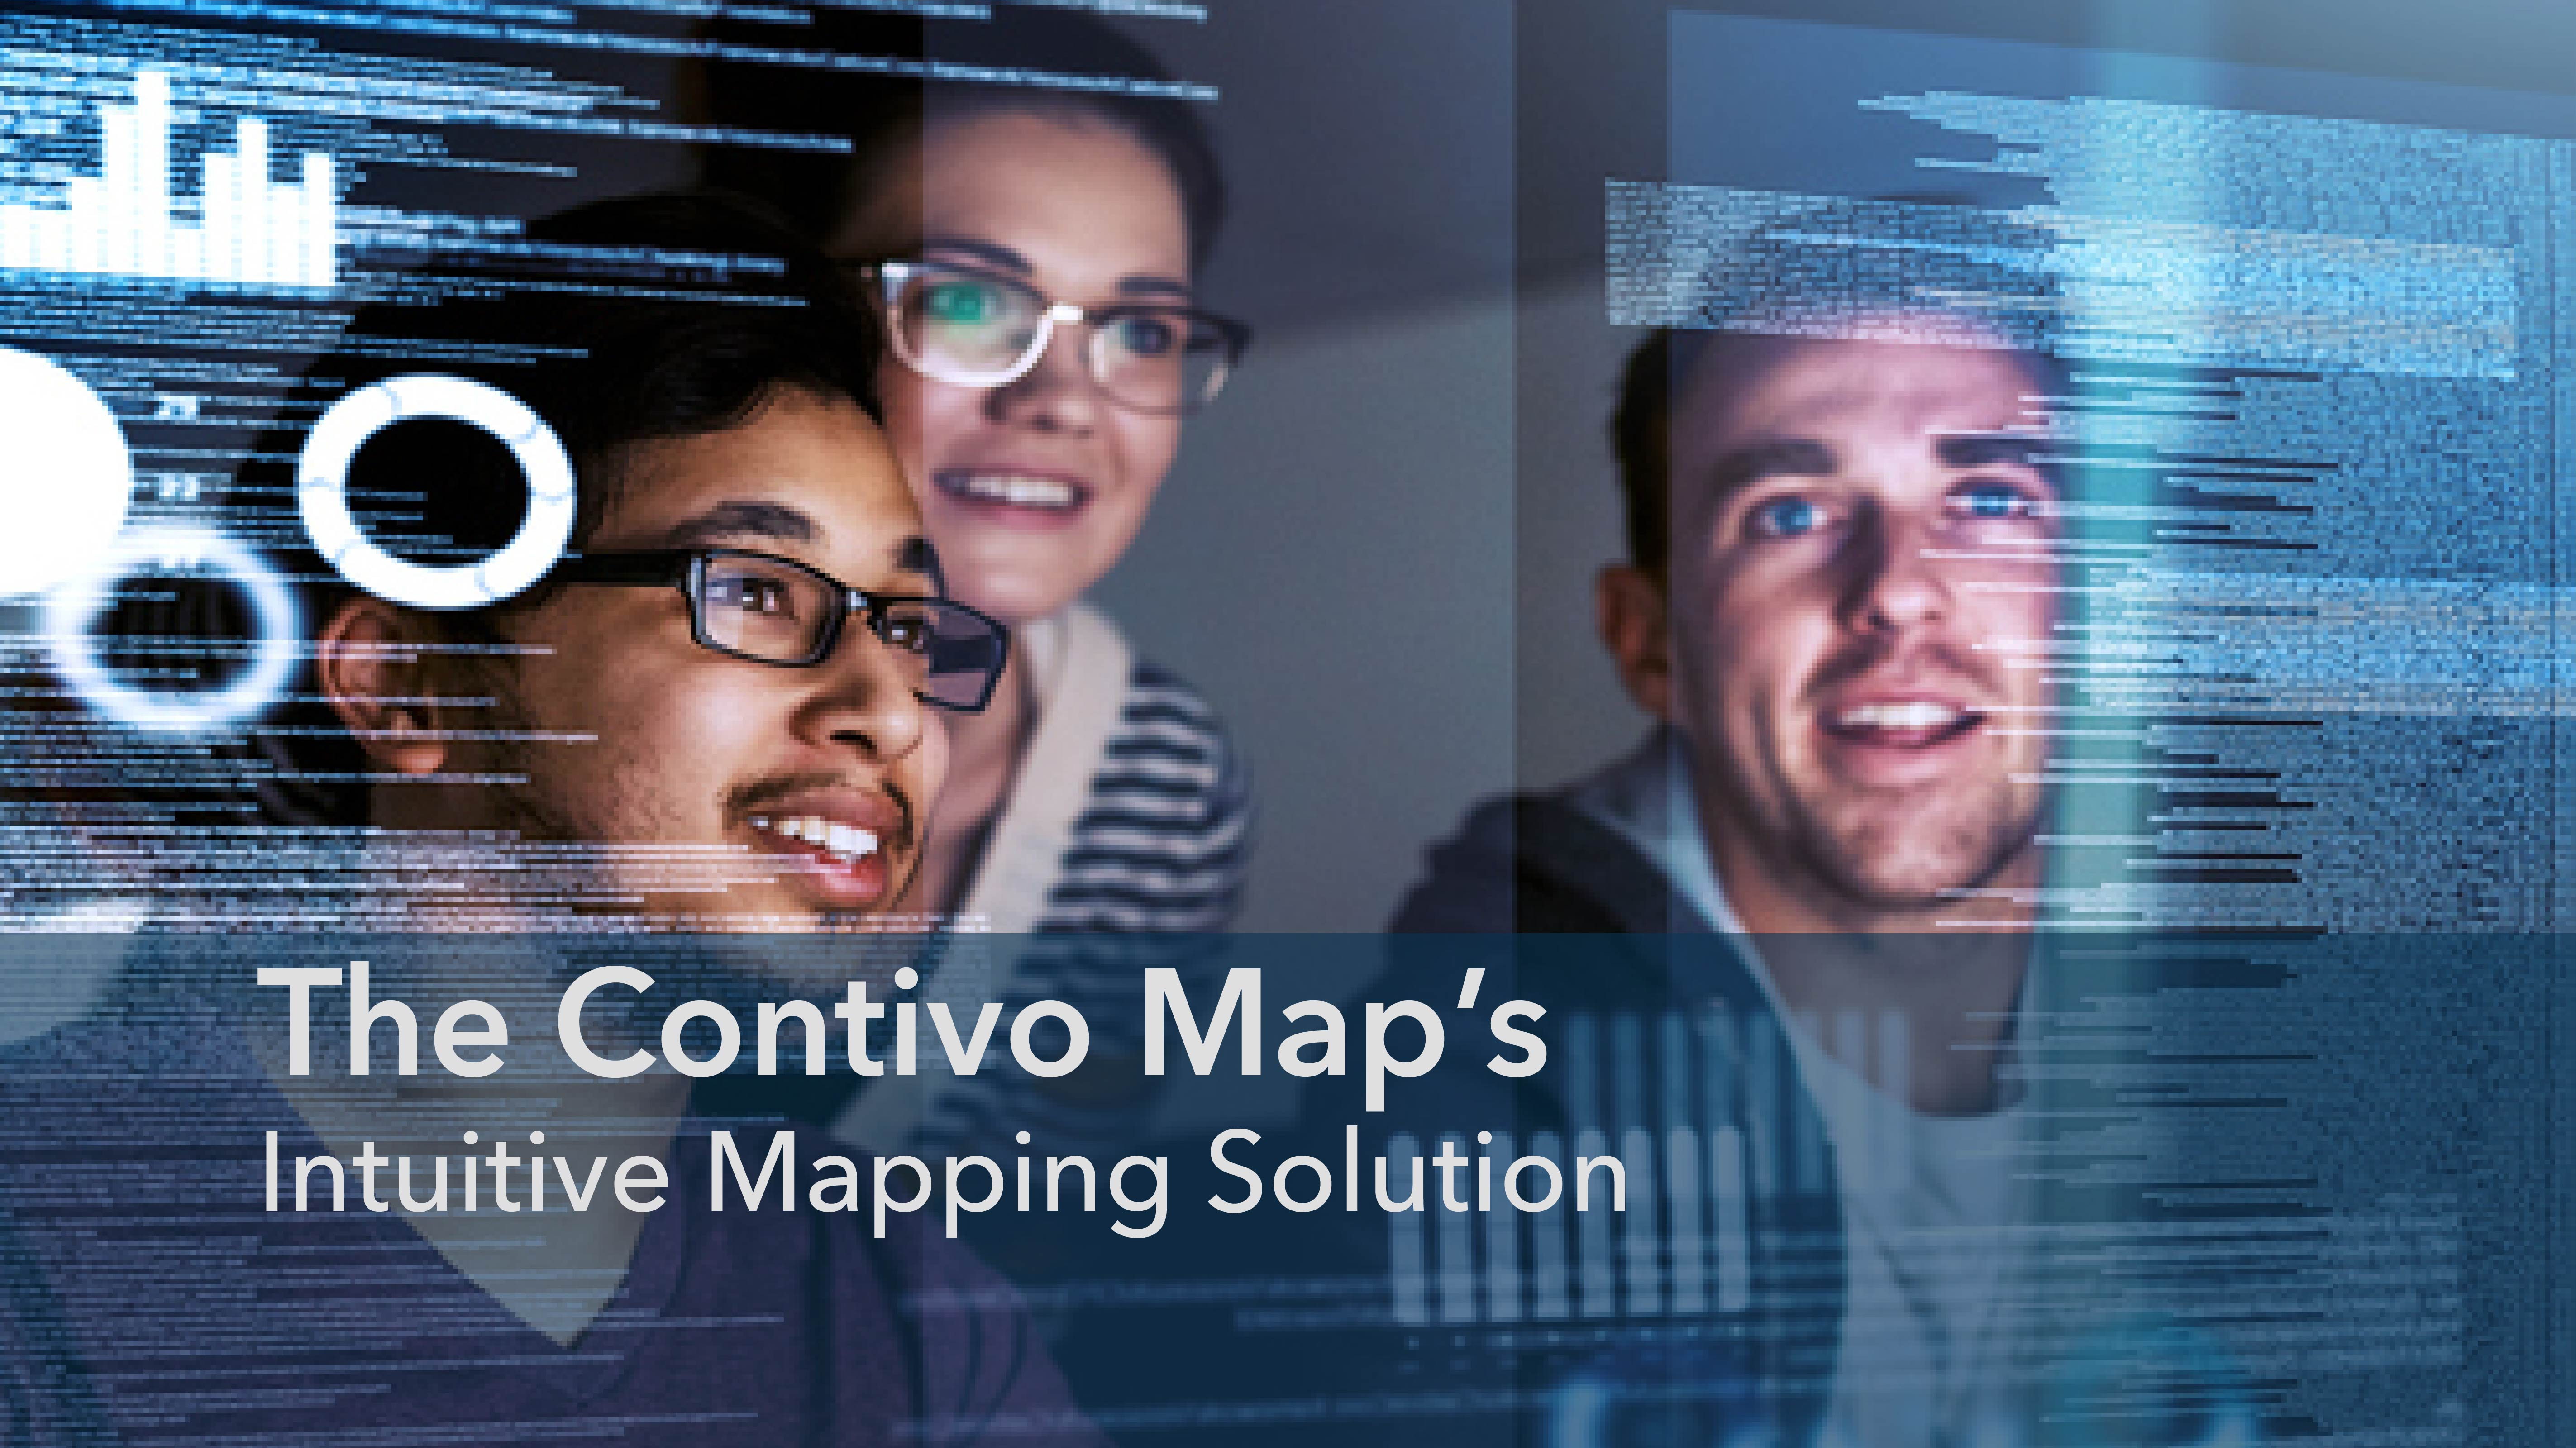 The Contivo Map's Intuitive Mapping Solution